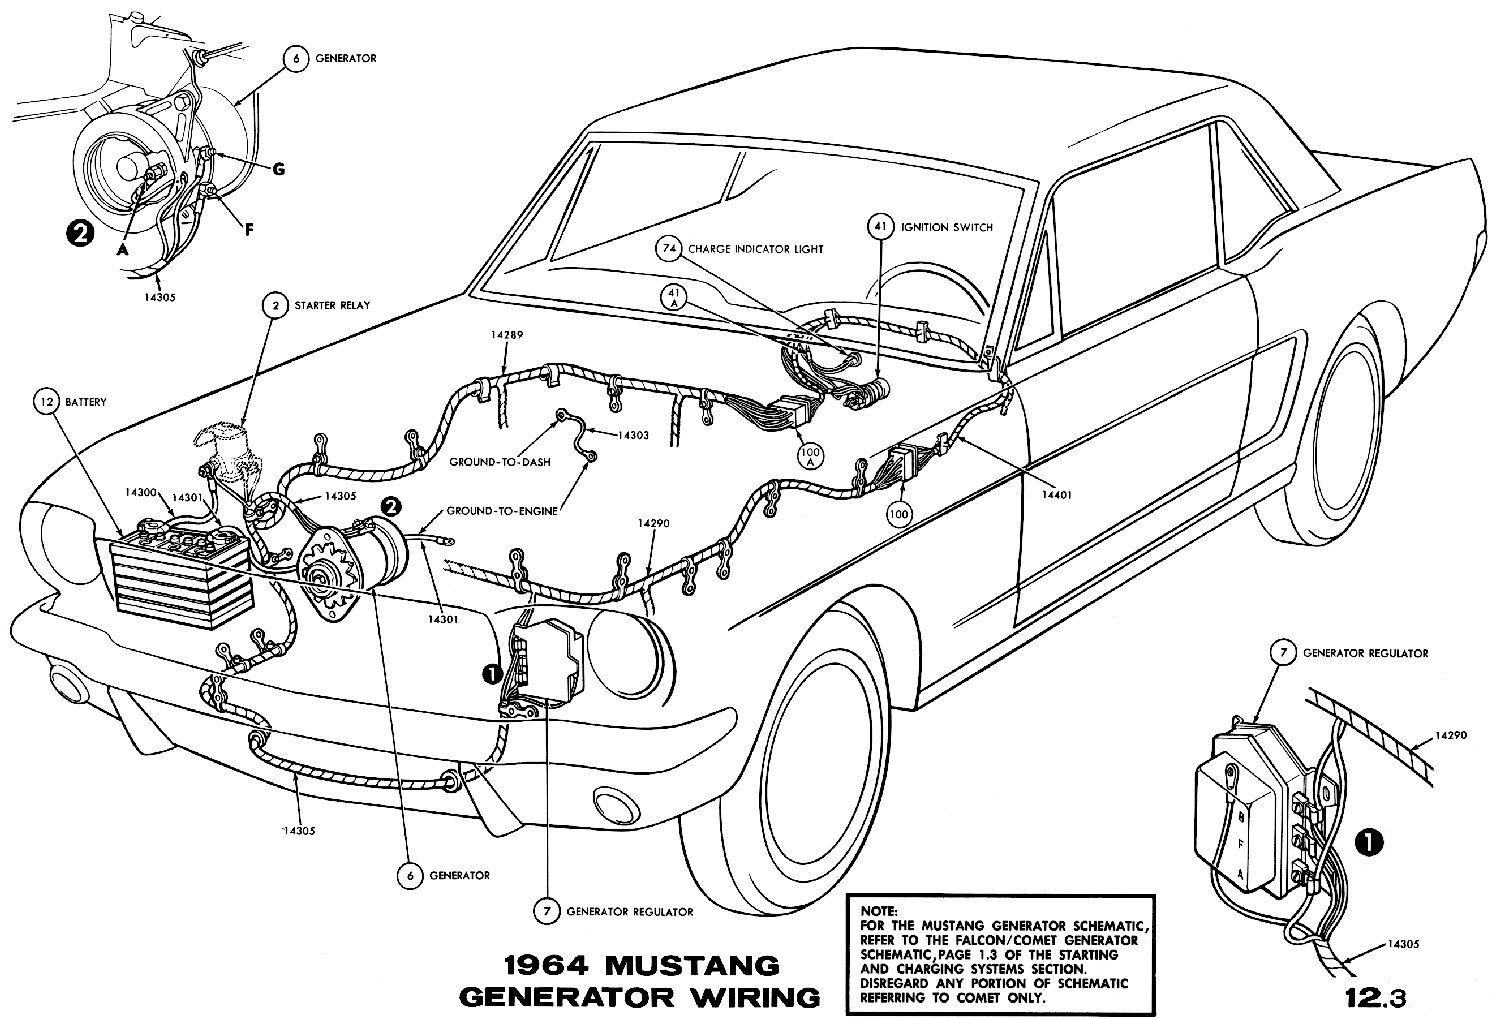 hight resolution of sm1964f 1964 mustang generator wiring pictorial or schematic